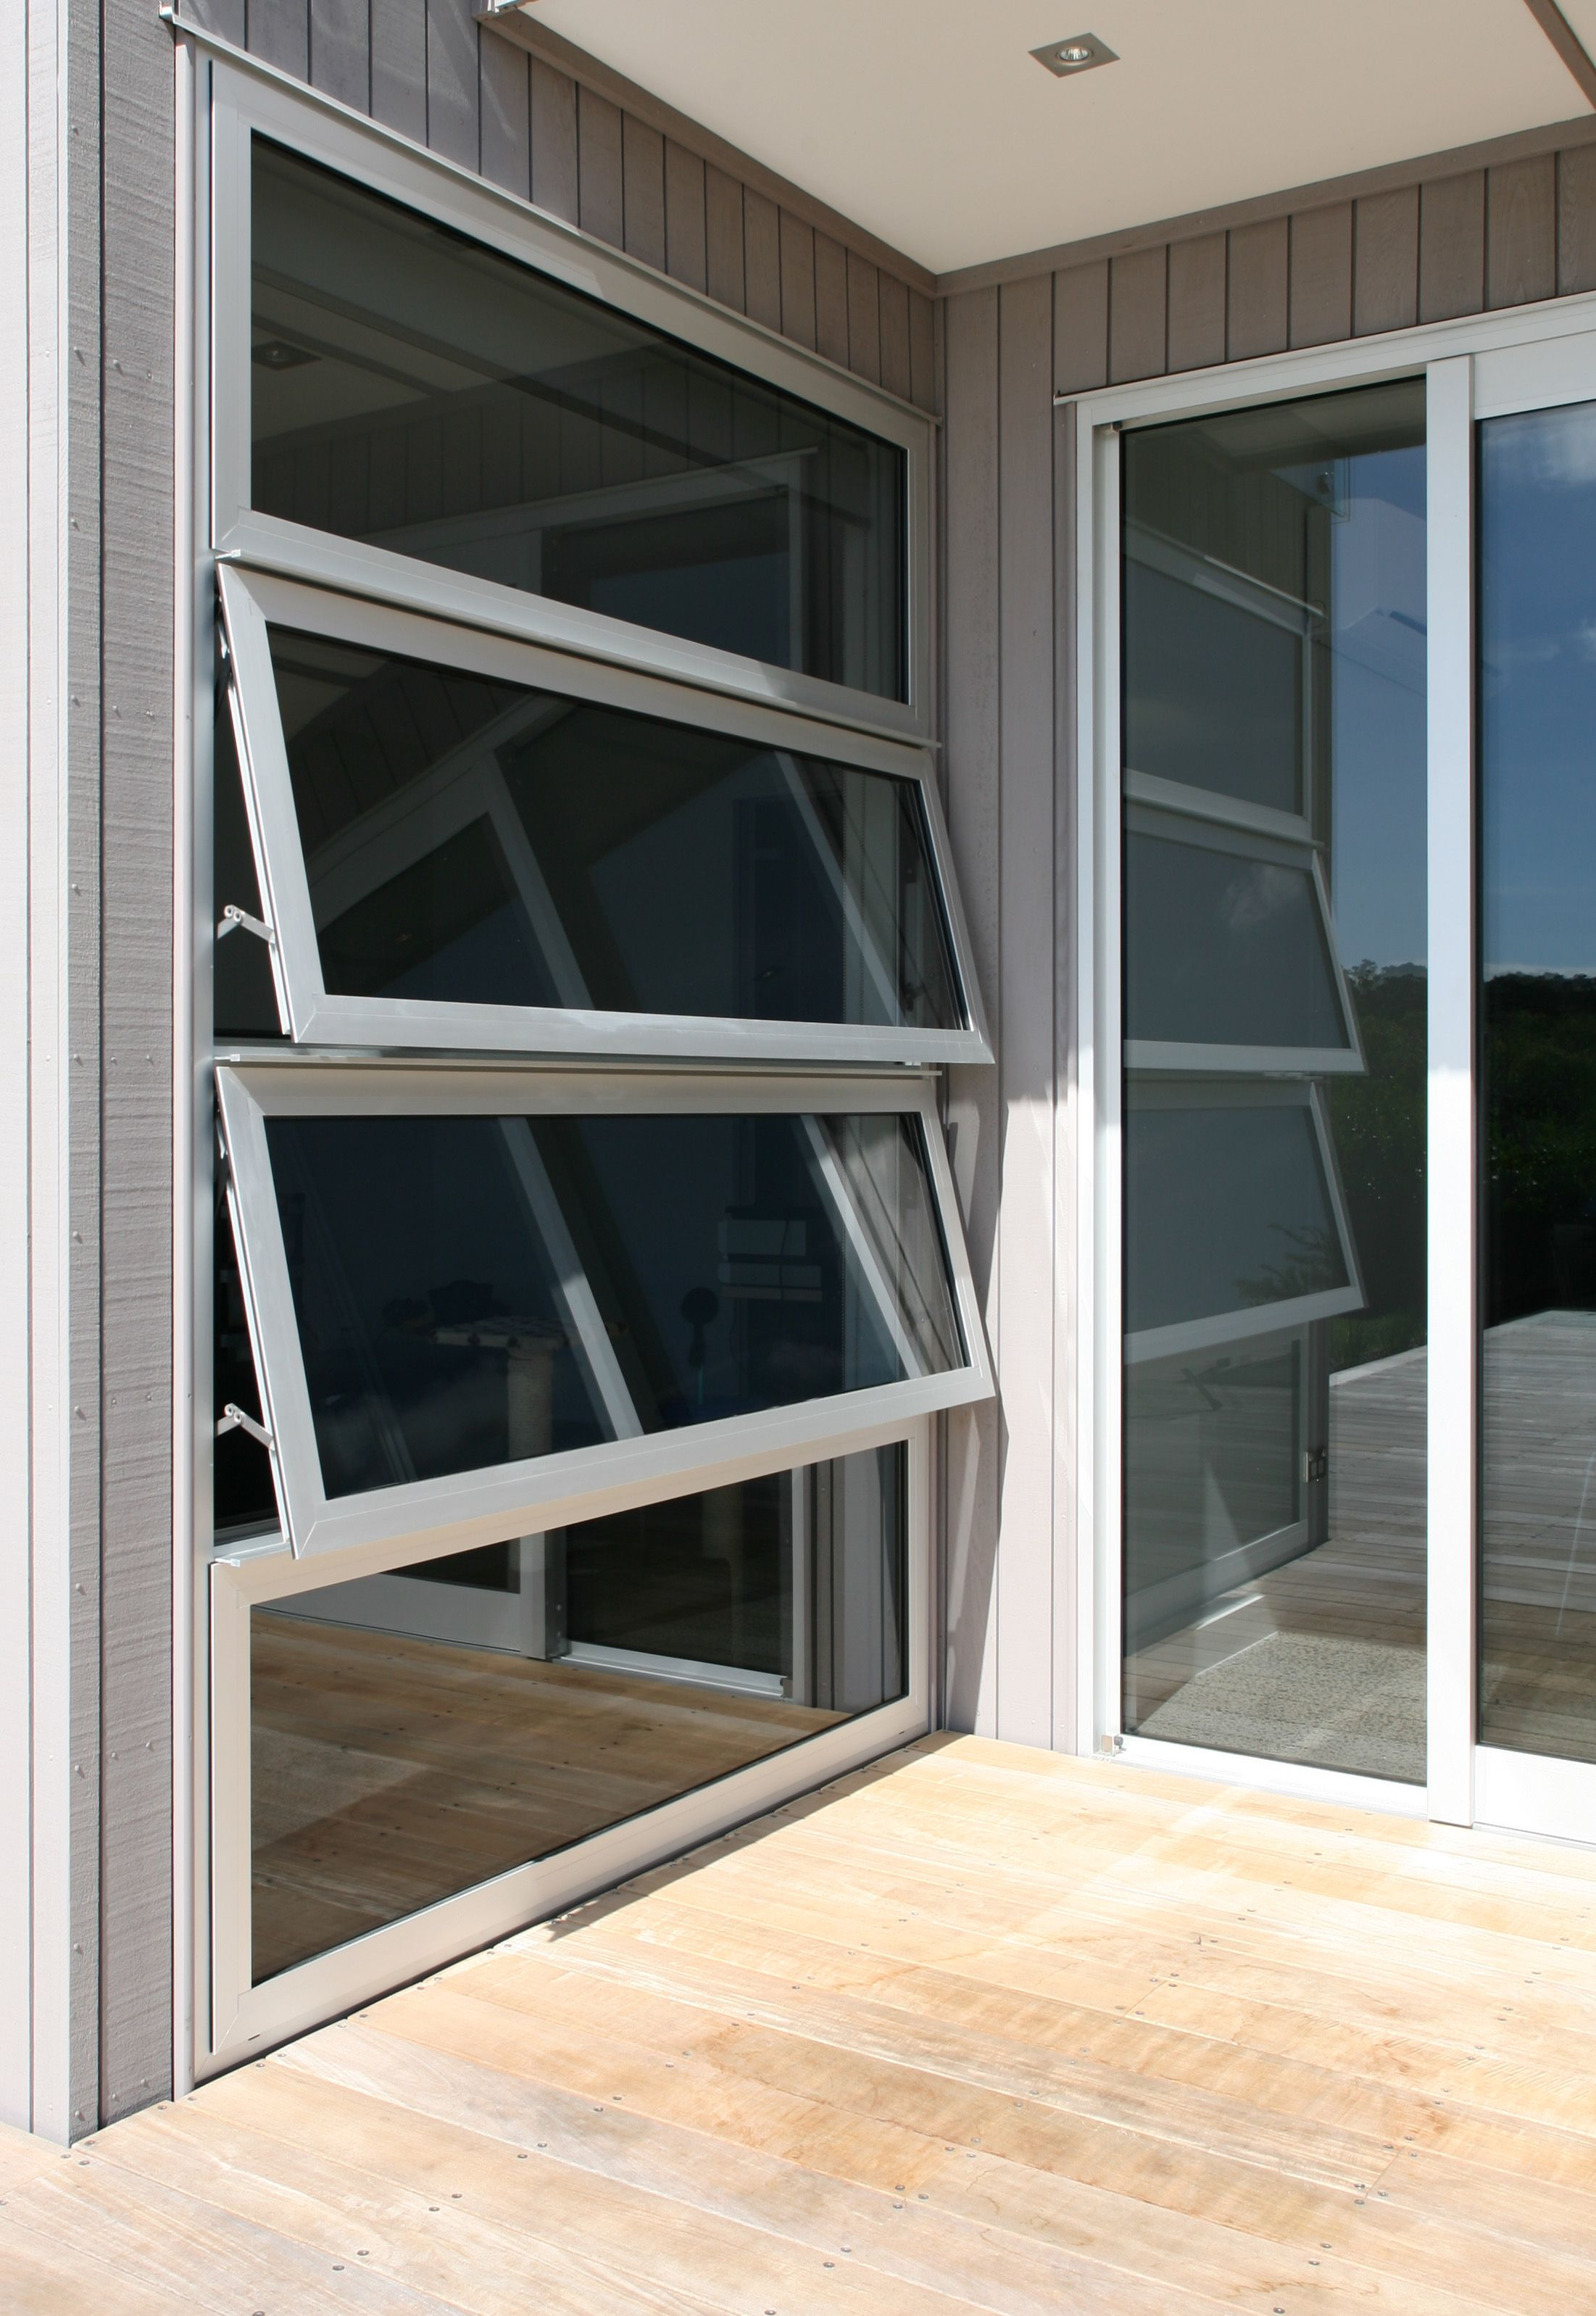 These Windows By Apl Are Fitted With Restrictor Stays For Secure